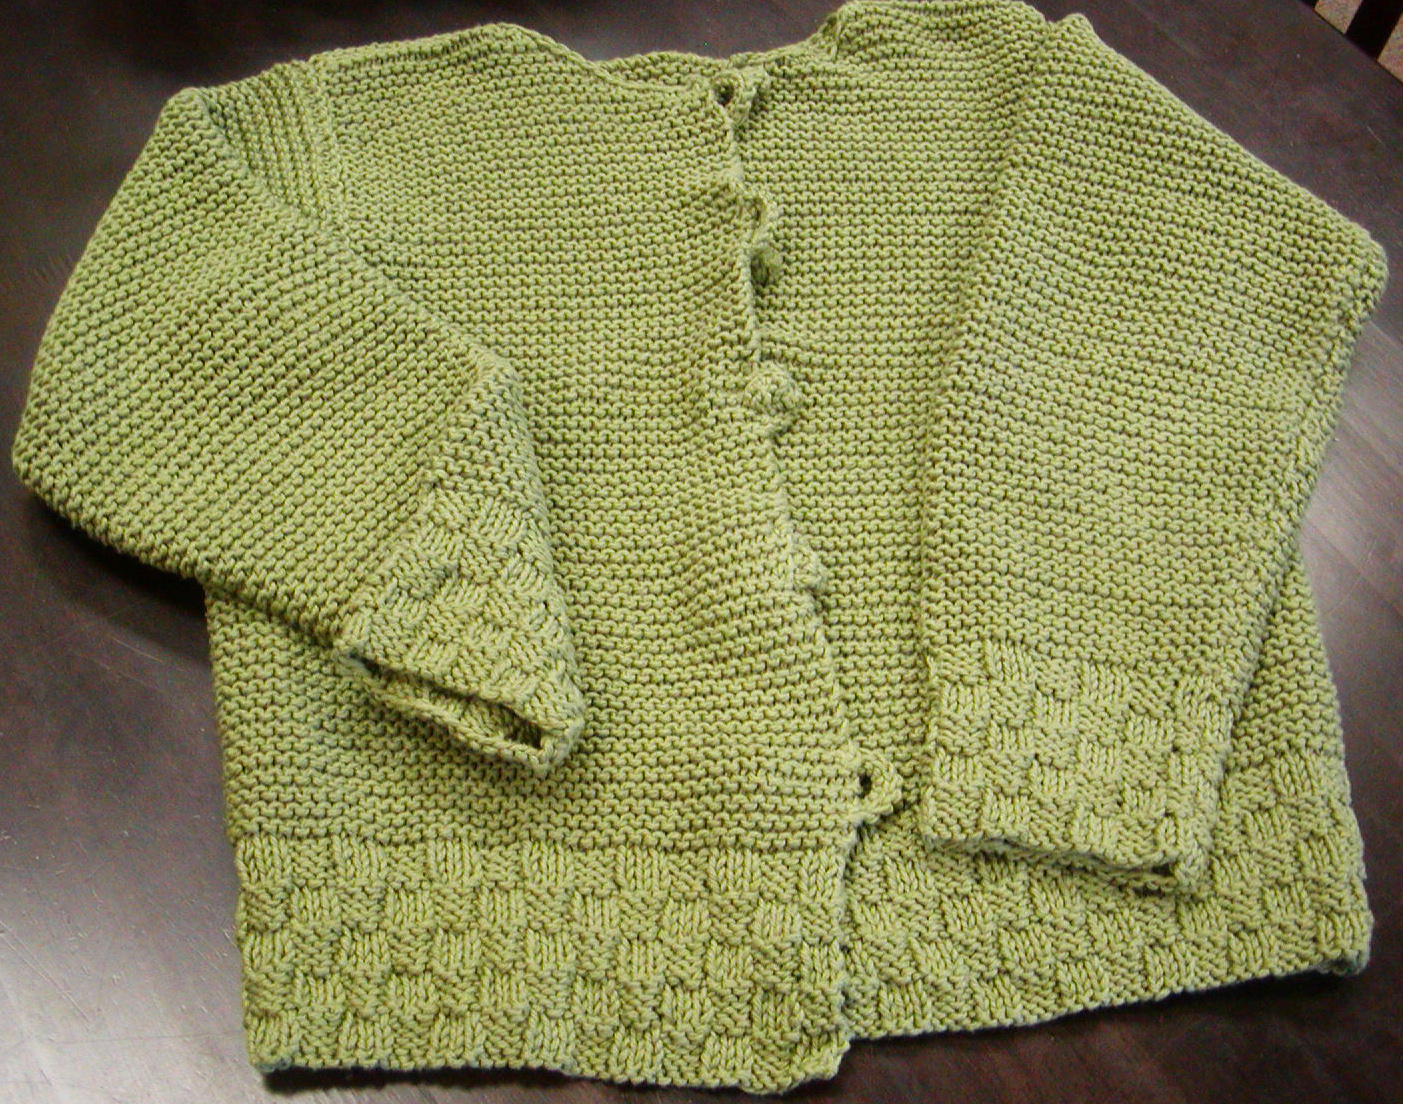 Knitting Stitch By Judy : Judy s Basket & Garter Stitch Cardigan where craft creates community.